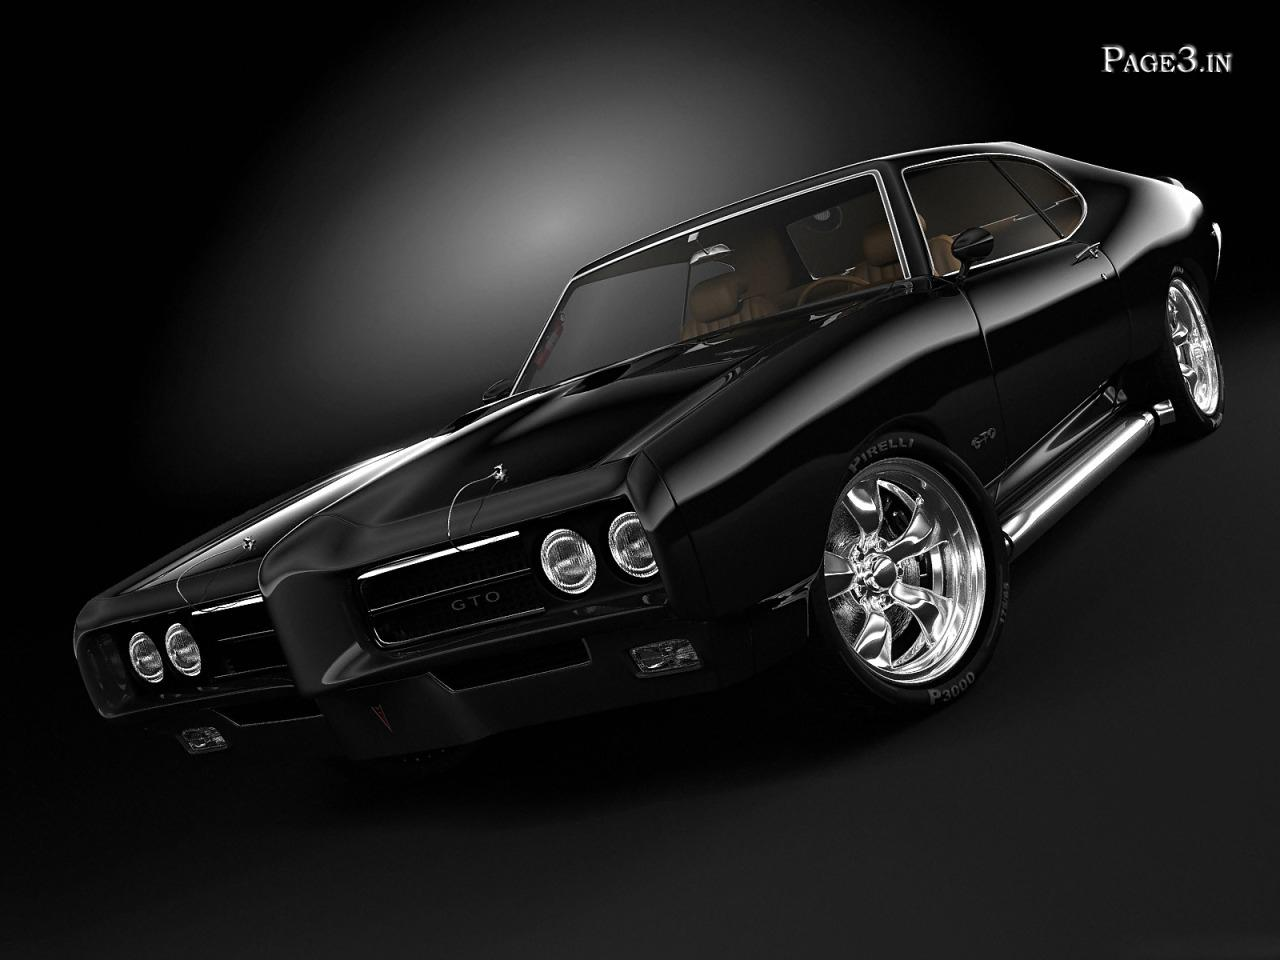 THE BEST NEW WALLPAPER COLLECTION muscle car wallpapers 1280x960